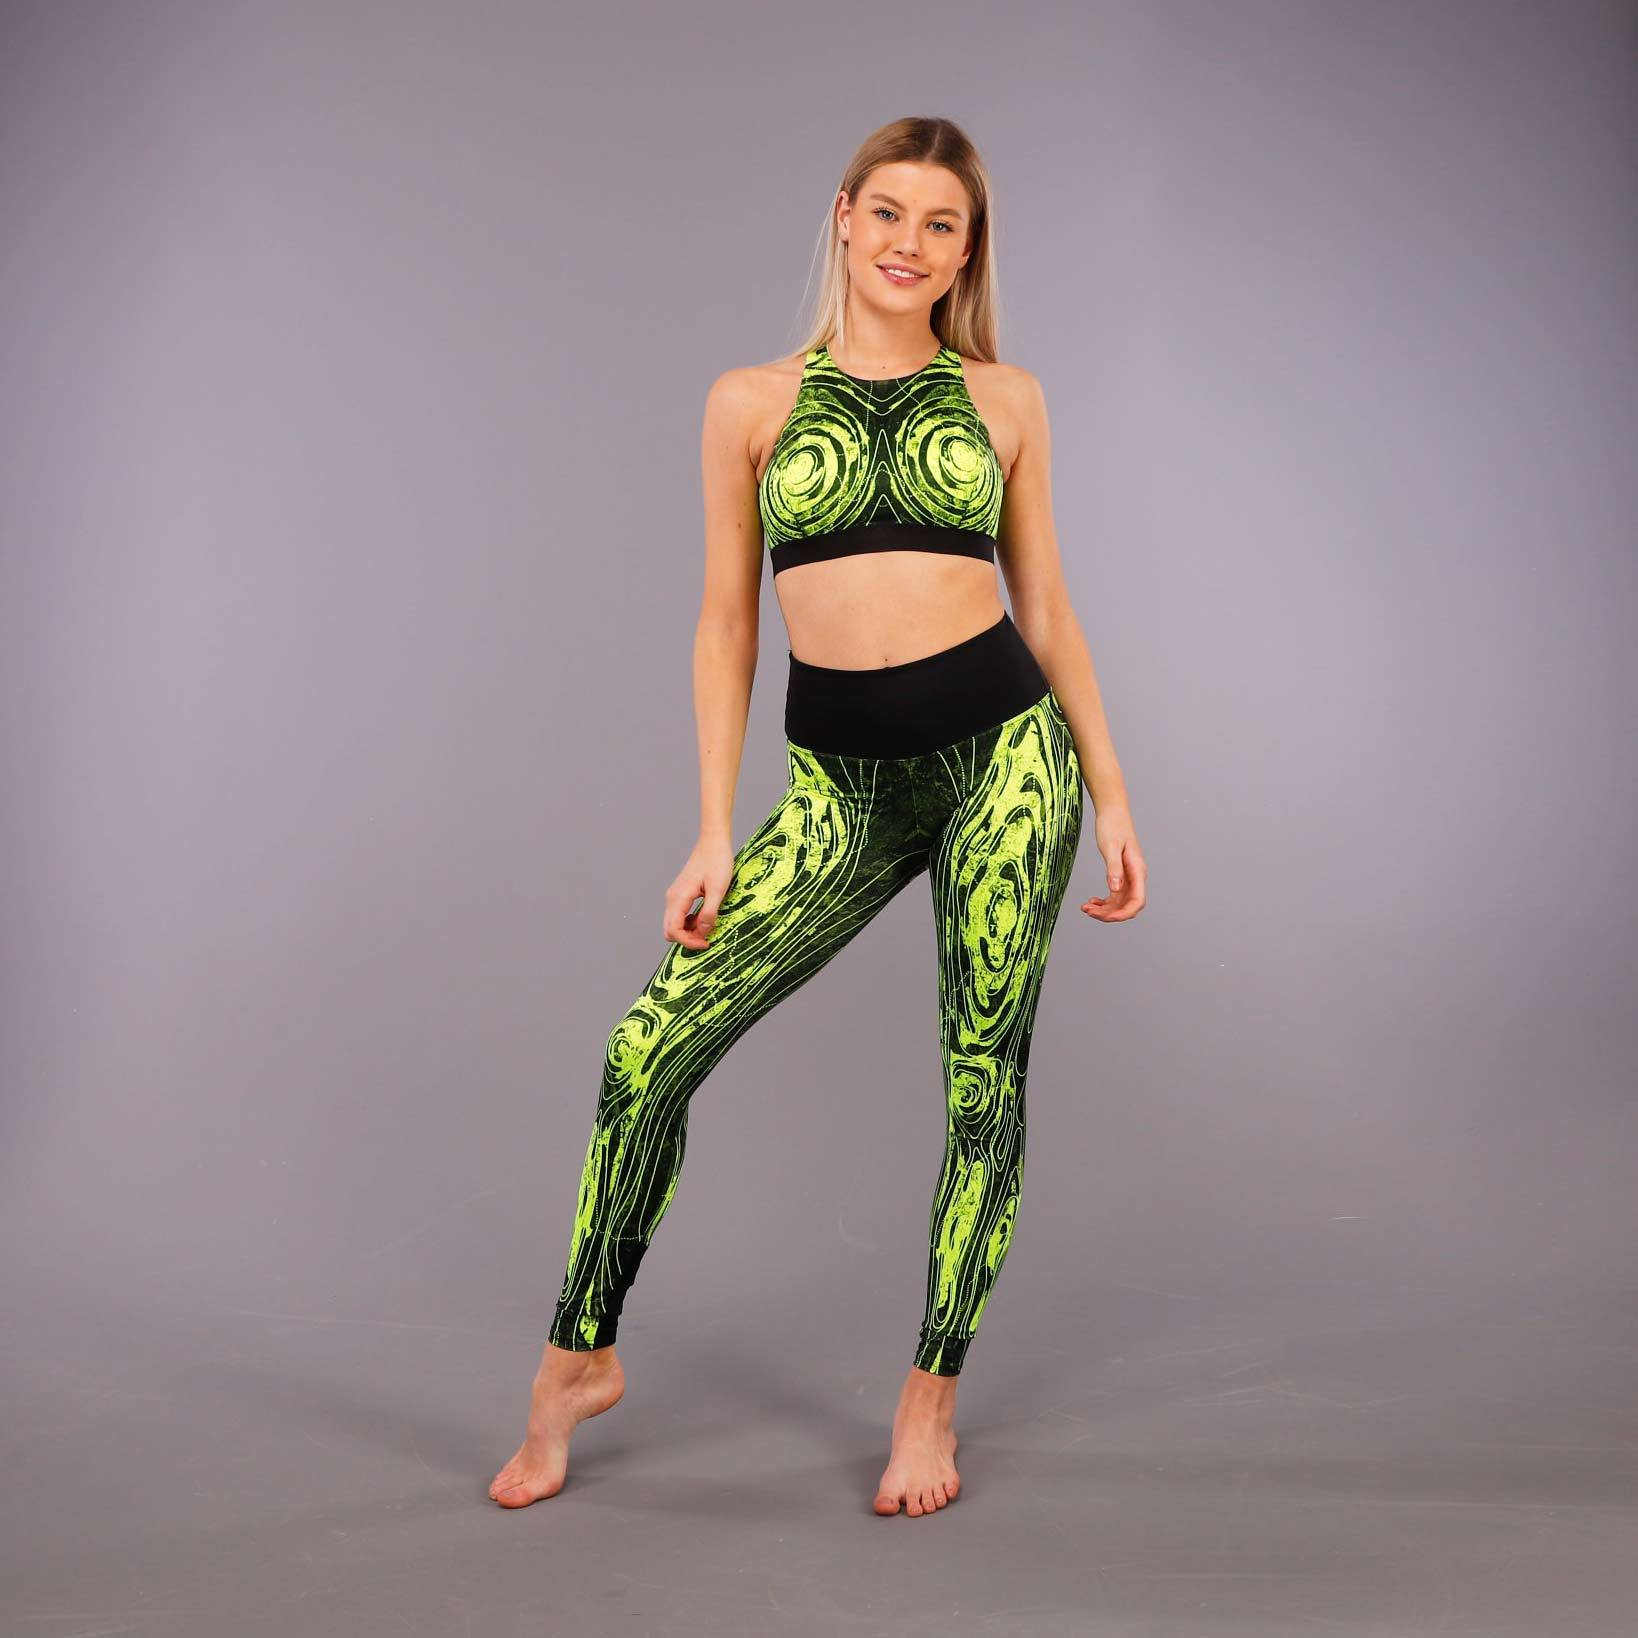 3RD ROCK's showstopper contour leggings and bra